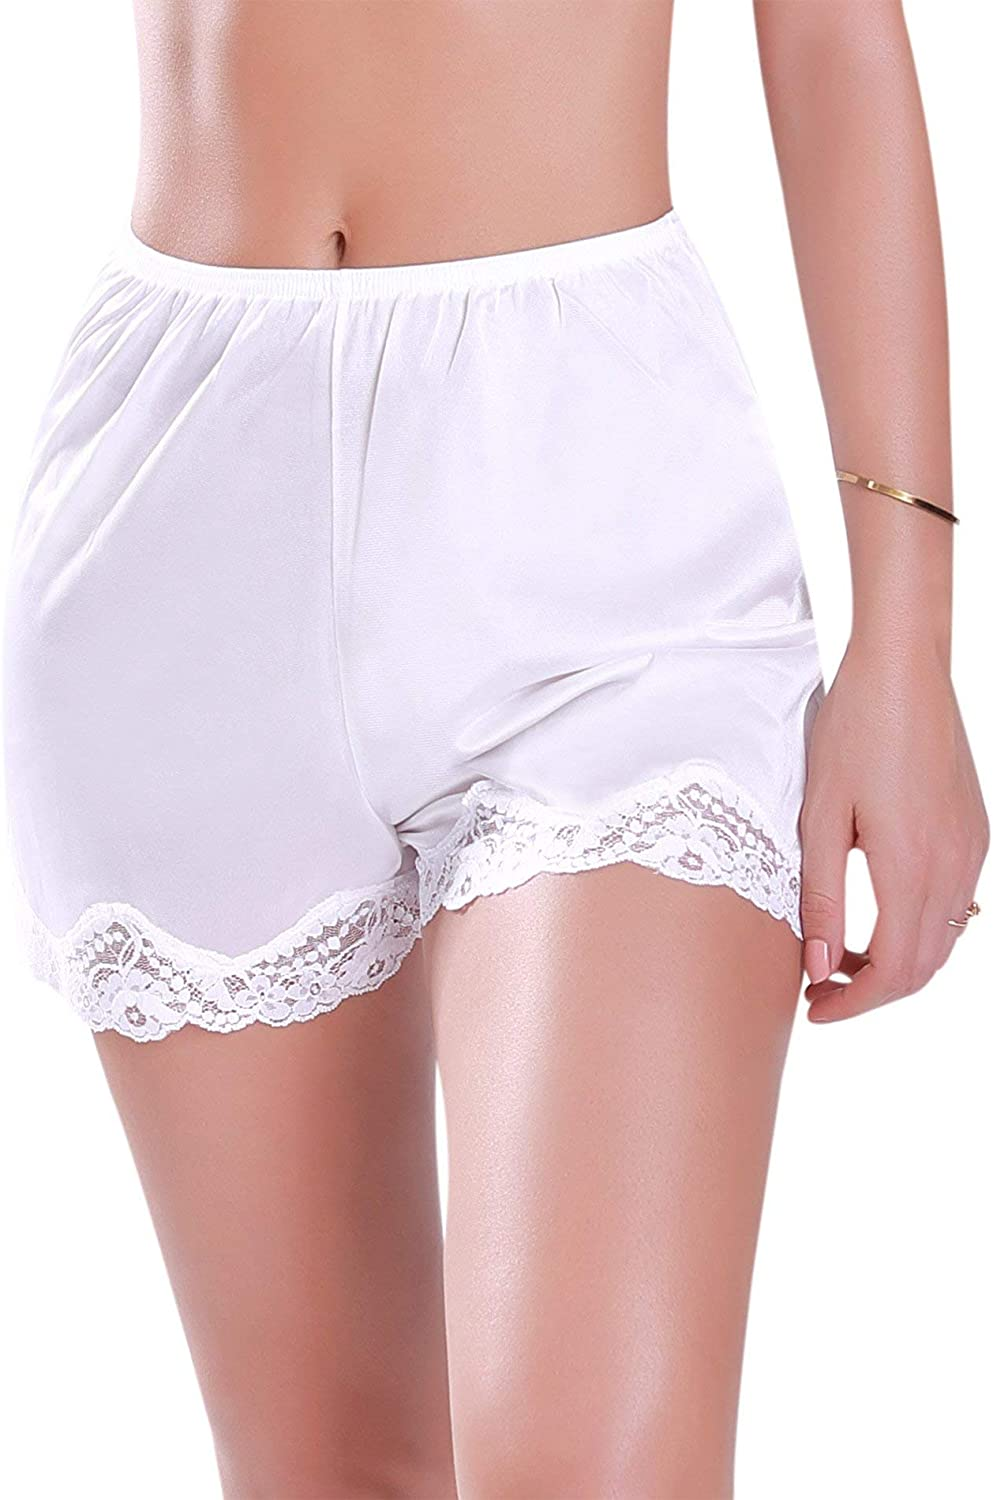 Ilusion 1039 Satin Bloomer Short Slip